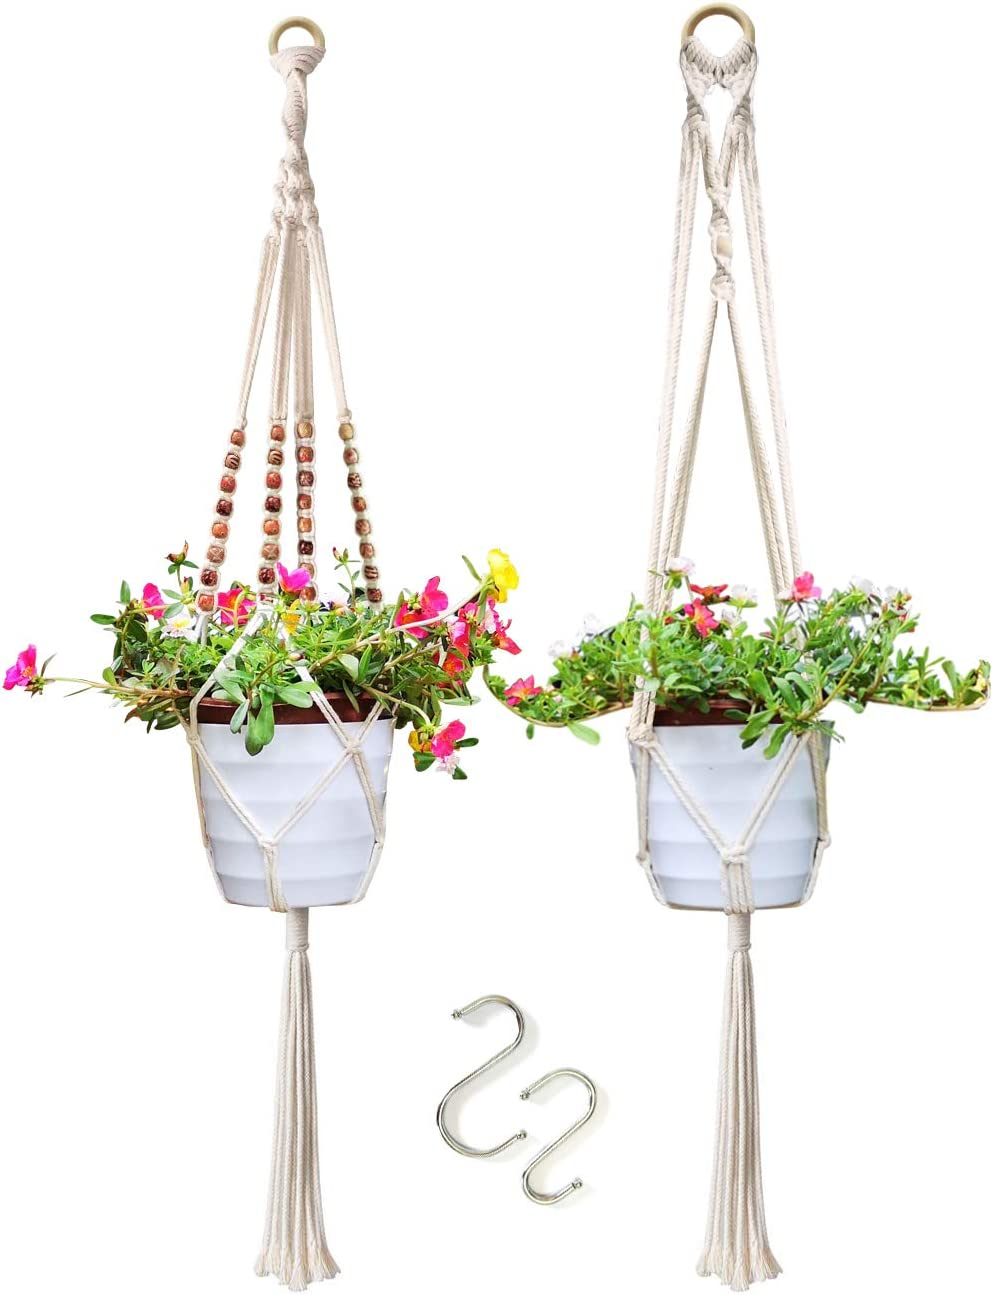 Plant Hangers – 2 Hanging Planters for Indoor Plants, Outdoor Plant Hangers, Handmade Cotton Hanging Pots for Plants 41 L with Beads, Perfect Wall Hanging Planter for Home, Garden, Office Decor